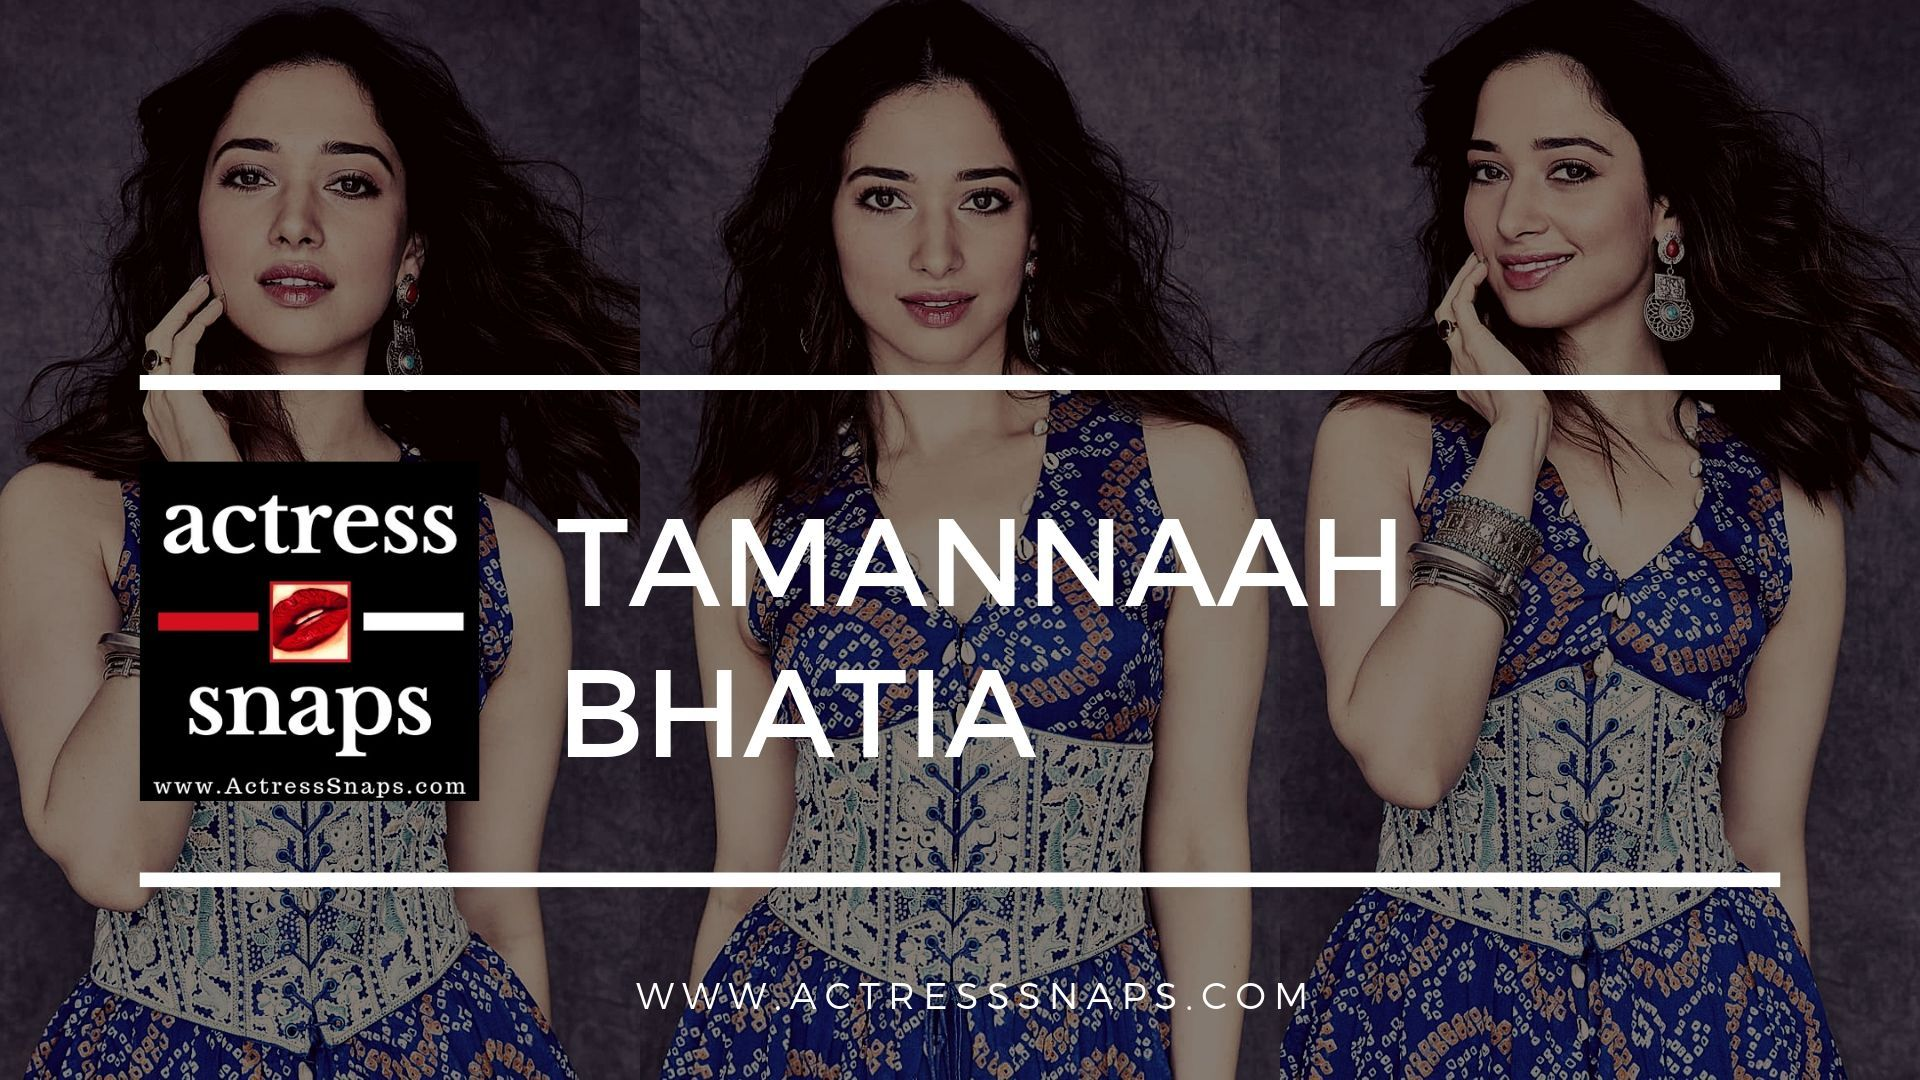 Tamannaah Bhatia - Latest Photoshoot Pictures - Sexy Actress Pictures | Hot Actress Pictures - ActressSnaps.com